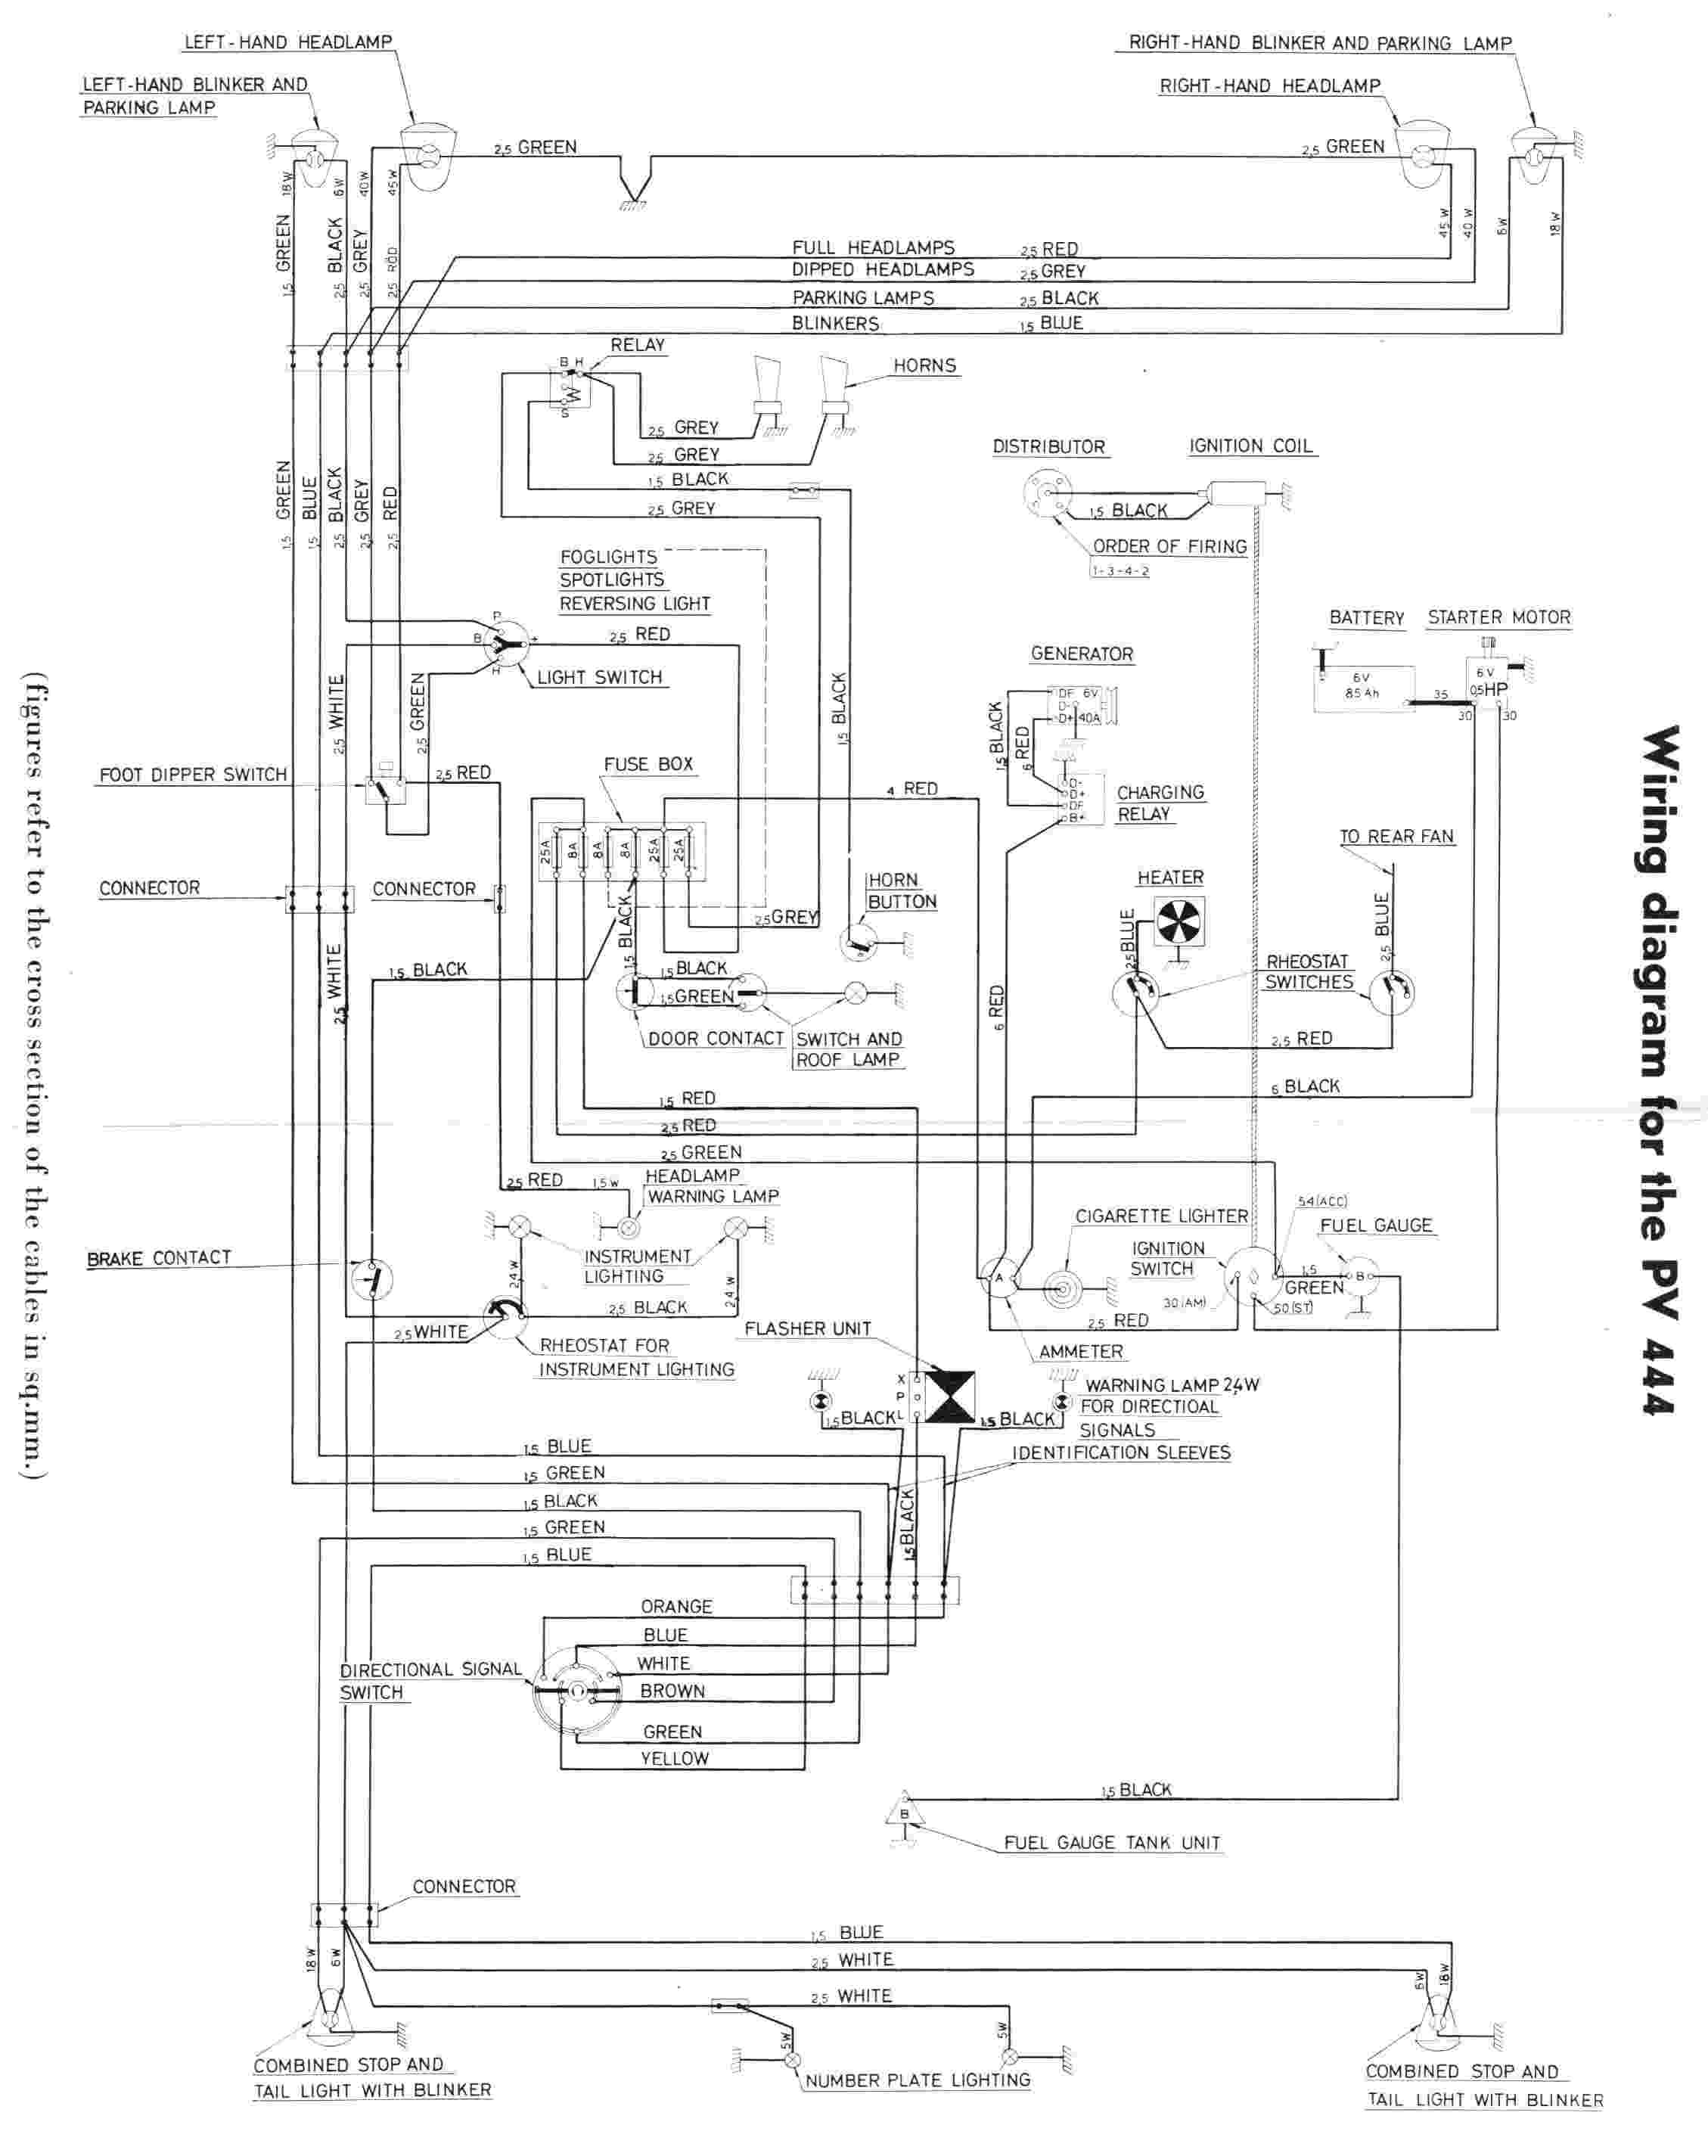 Volvo Car Manuals Wiring Diagrams Pdf Fault Codes Saab 93 Headlight Diagram Download